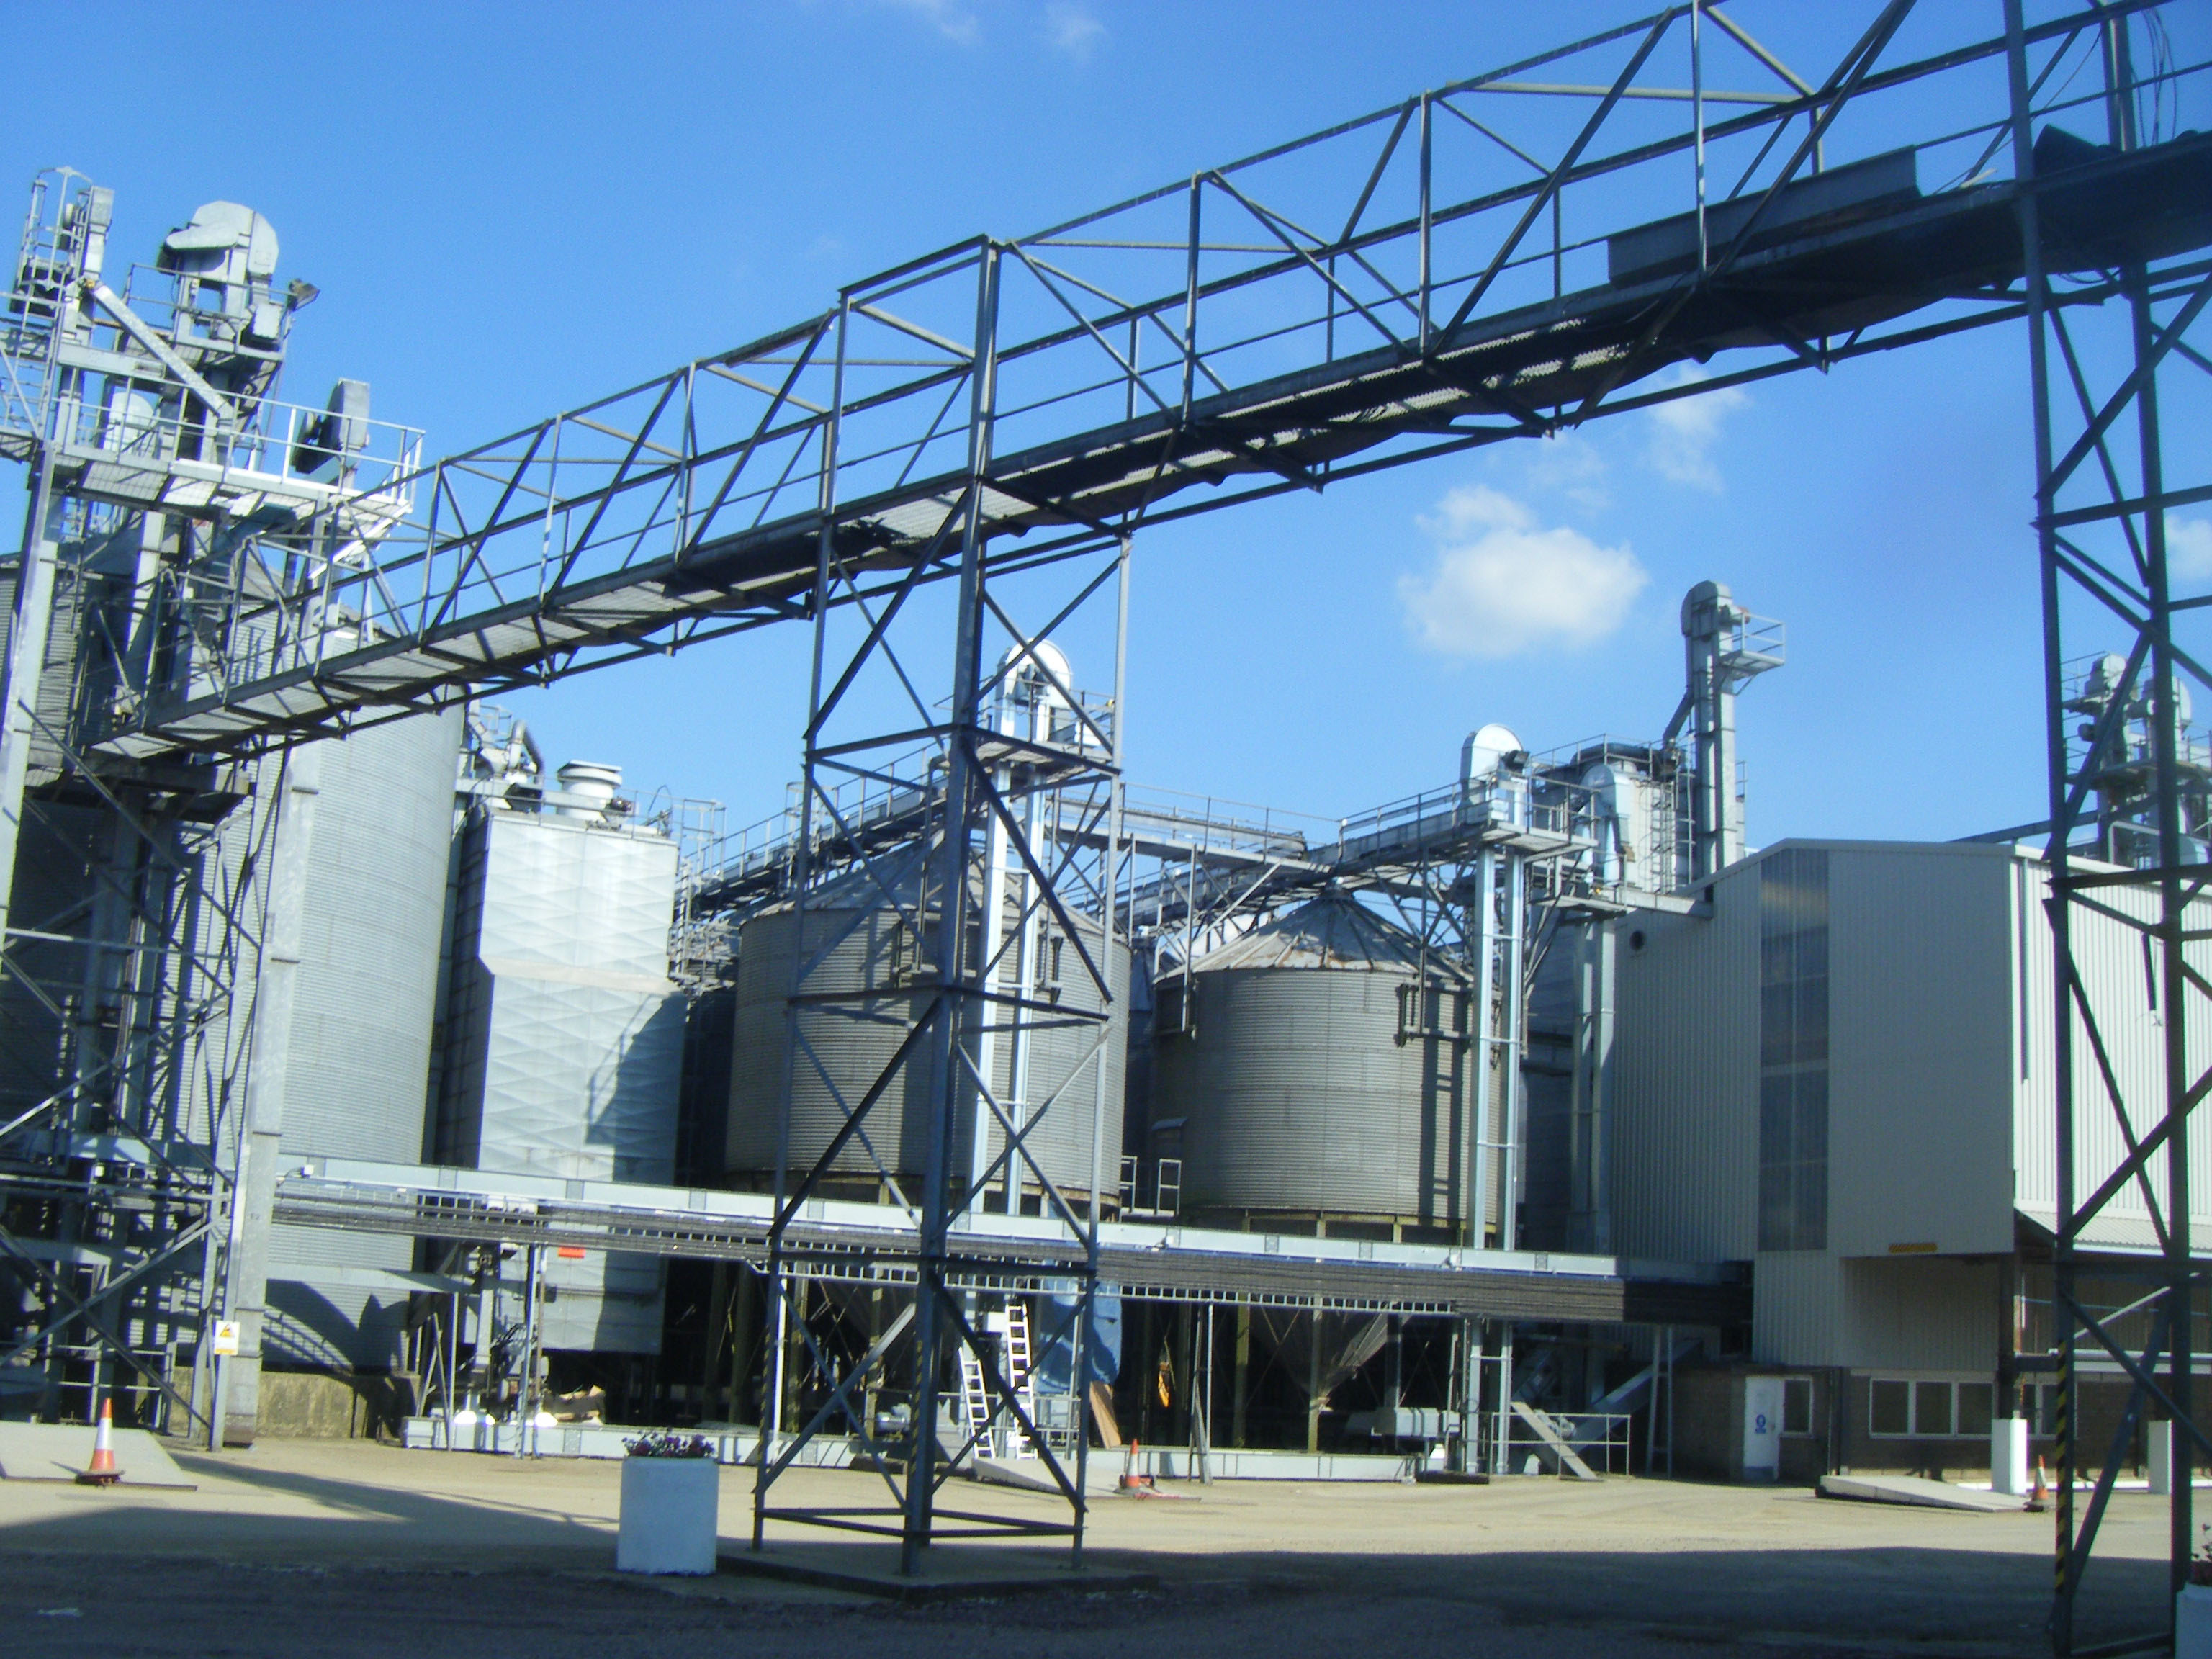 WESSEX GRAIN'S NEW FACILITY FEATURES STORAGE, HANDLING AND DRYING EXPERTISE OF BDC SYSTEMS